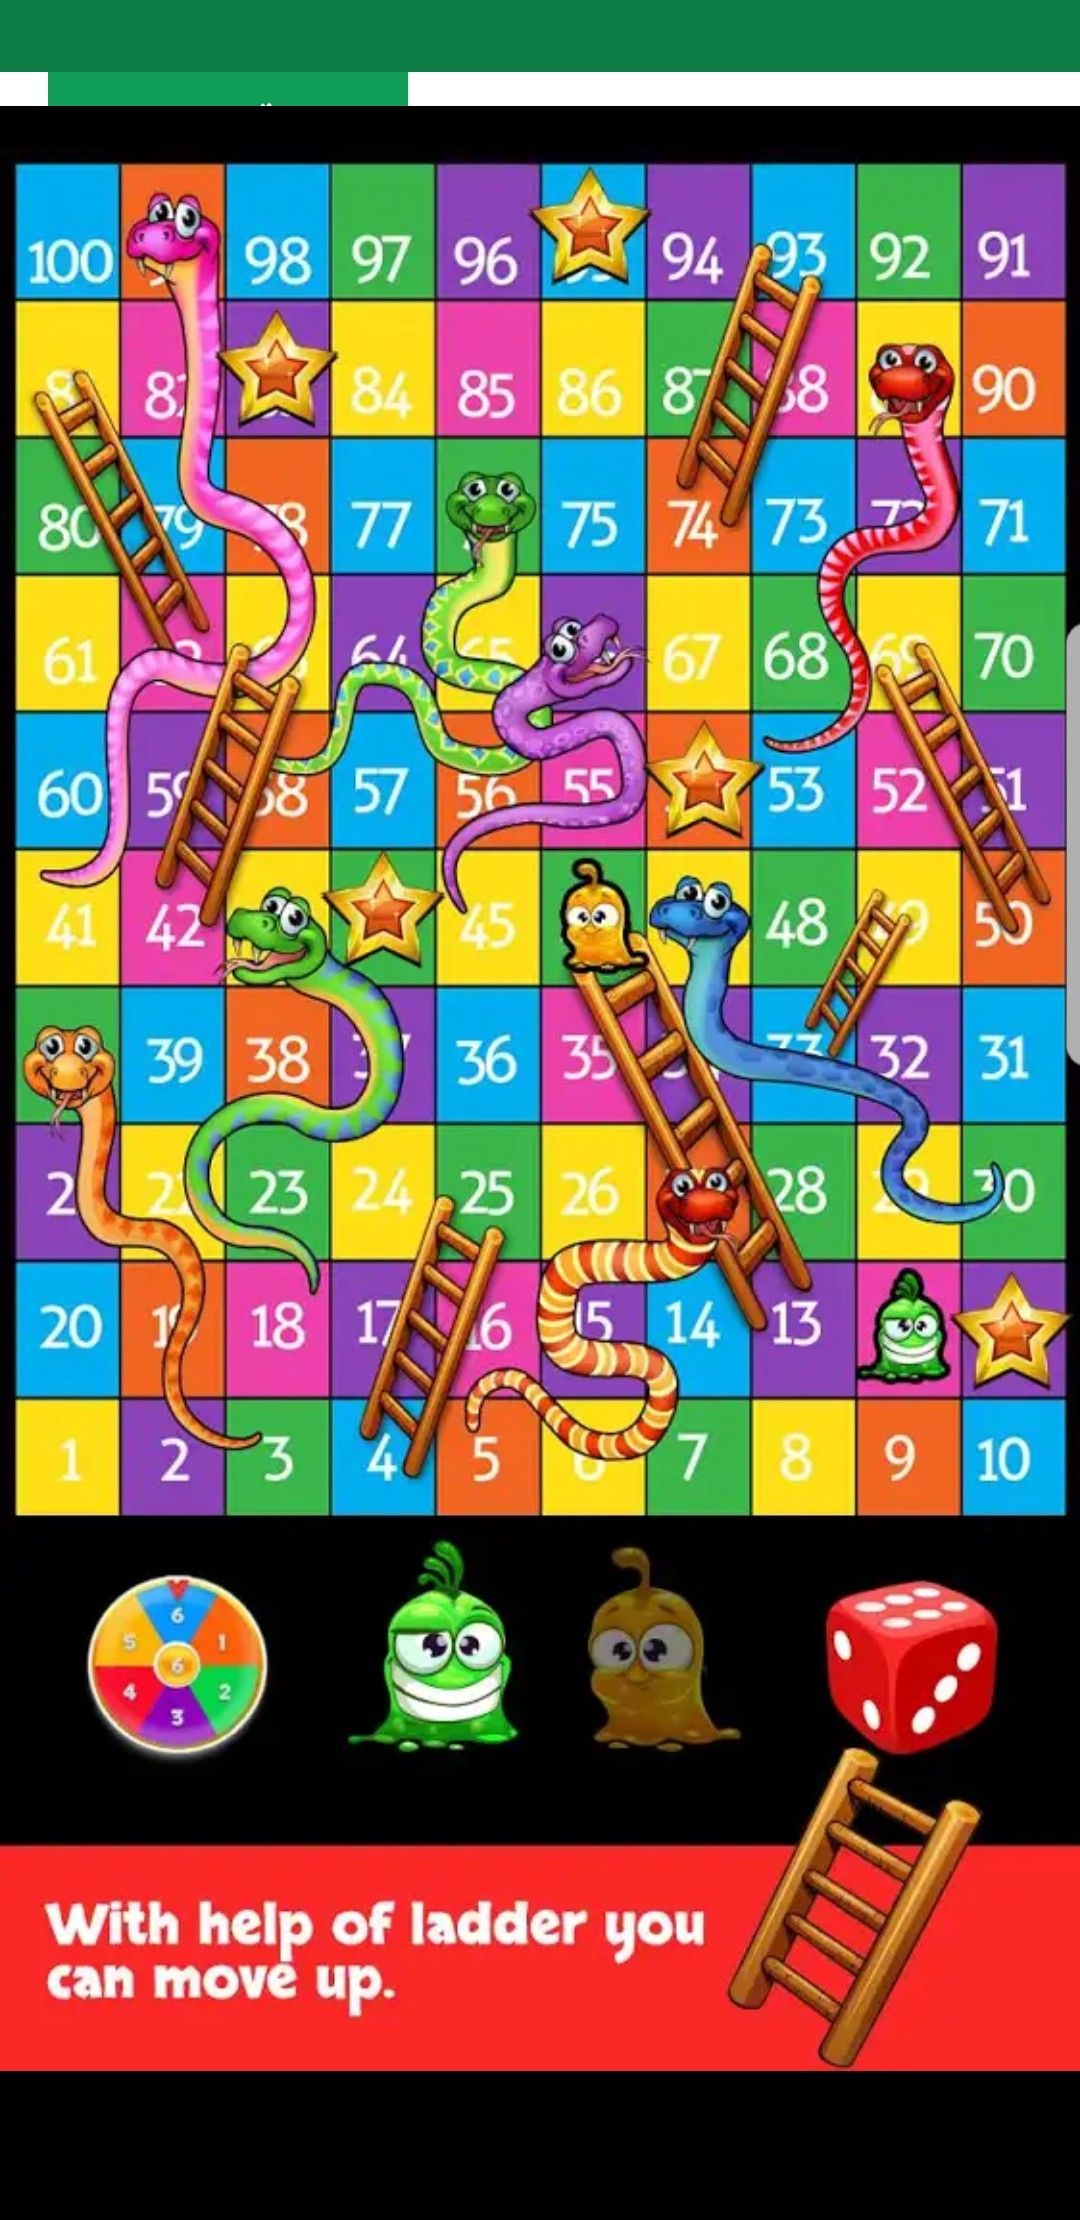 Pin by thth on رمضان عيد Android apk, Games for kids